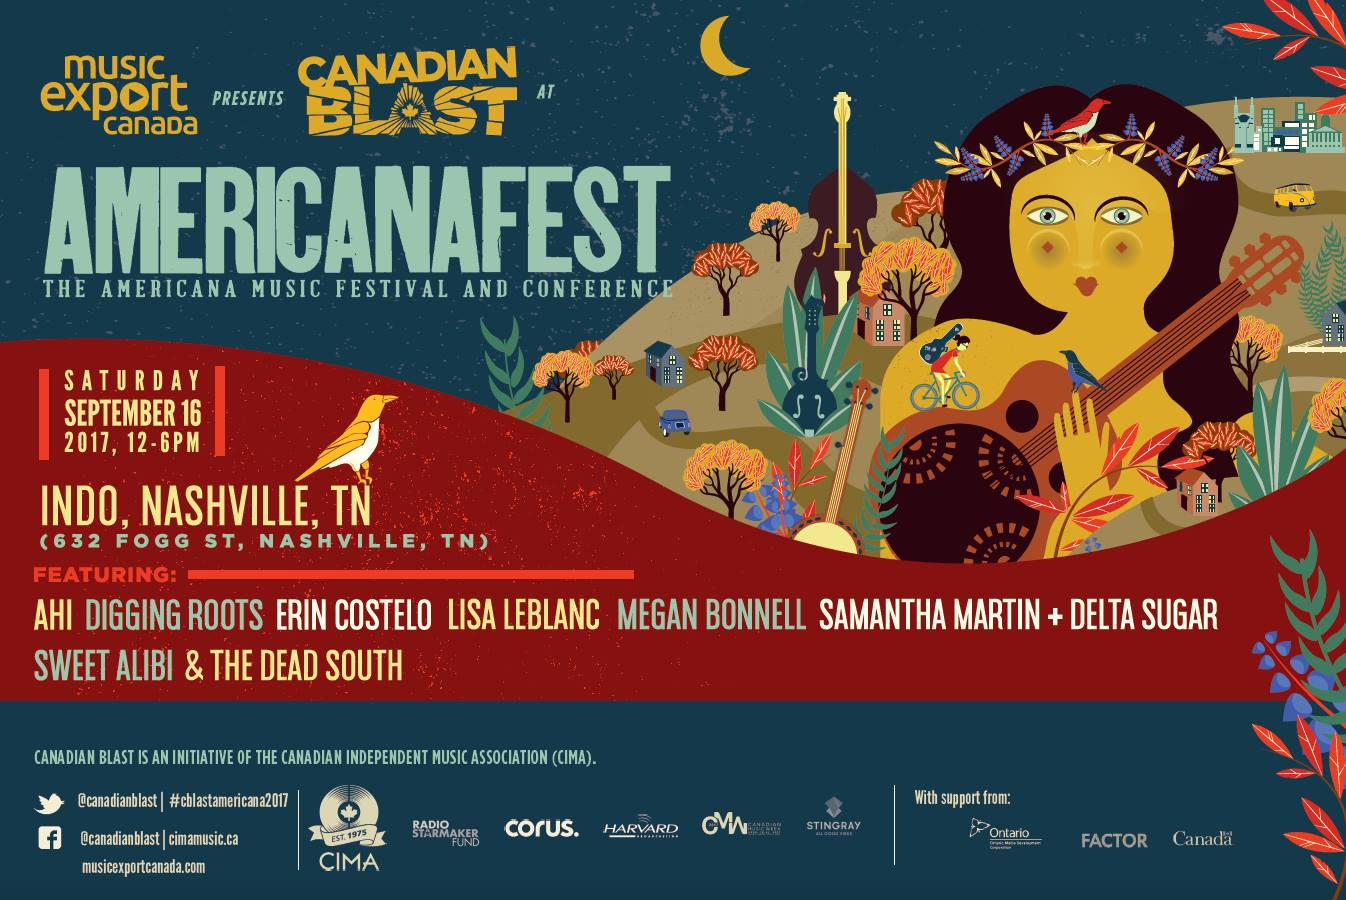 Music Export Canada presents: Canadian Blast at Americana